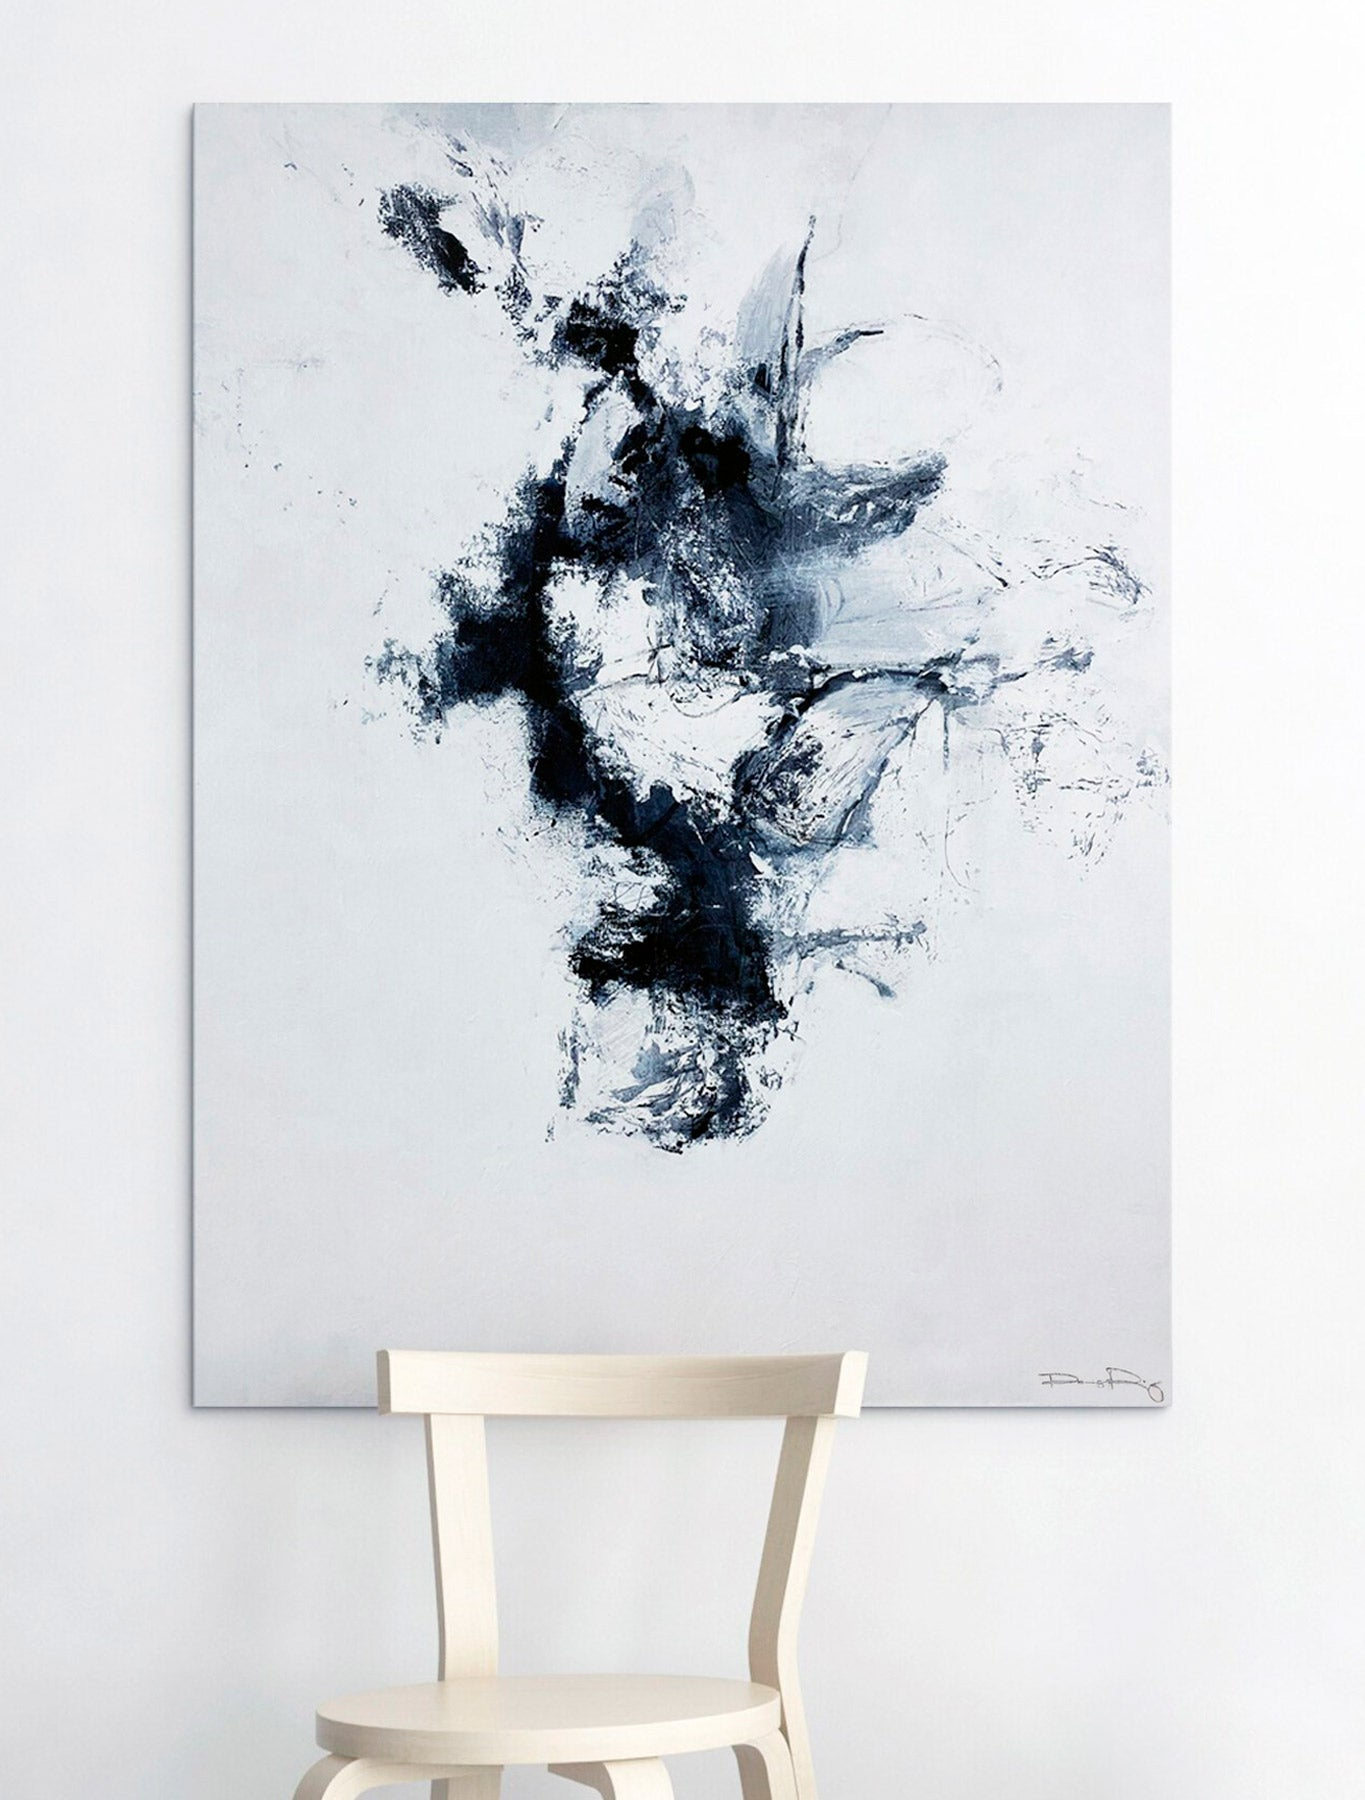 Clear Your Head (on Wall) - Abstract Artwork By Paige Ring